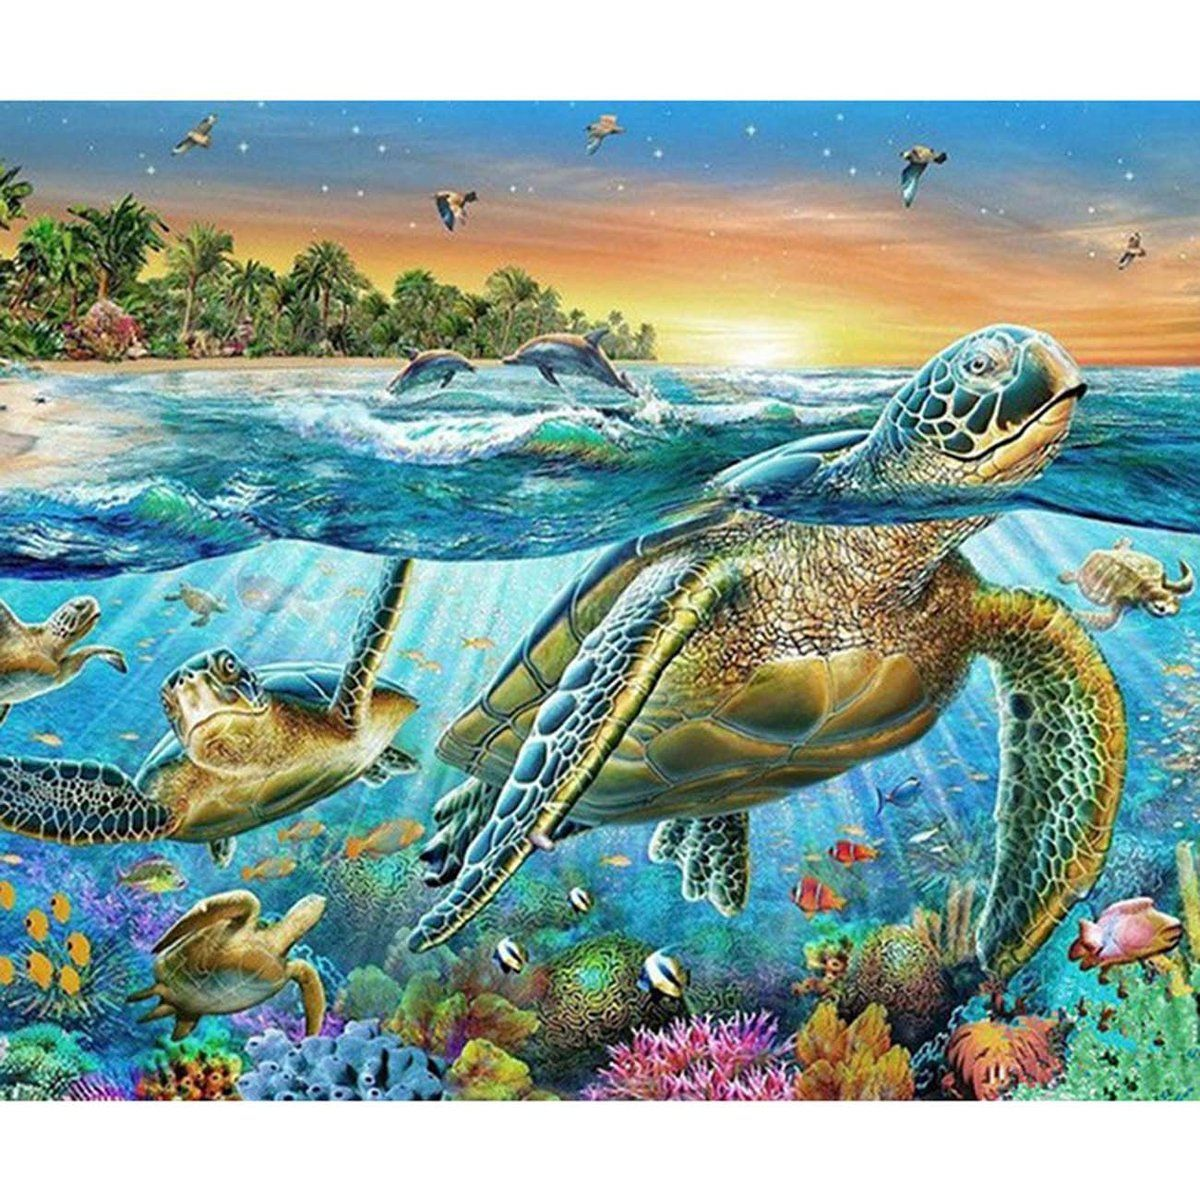 Turtle Animal Full Drill 5D Diamond Painting Cross Stitching Embroidery Decor